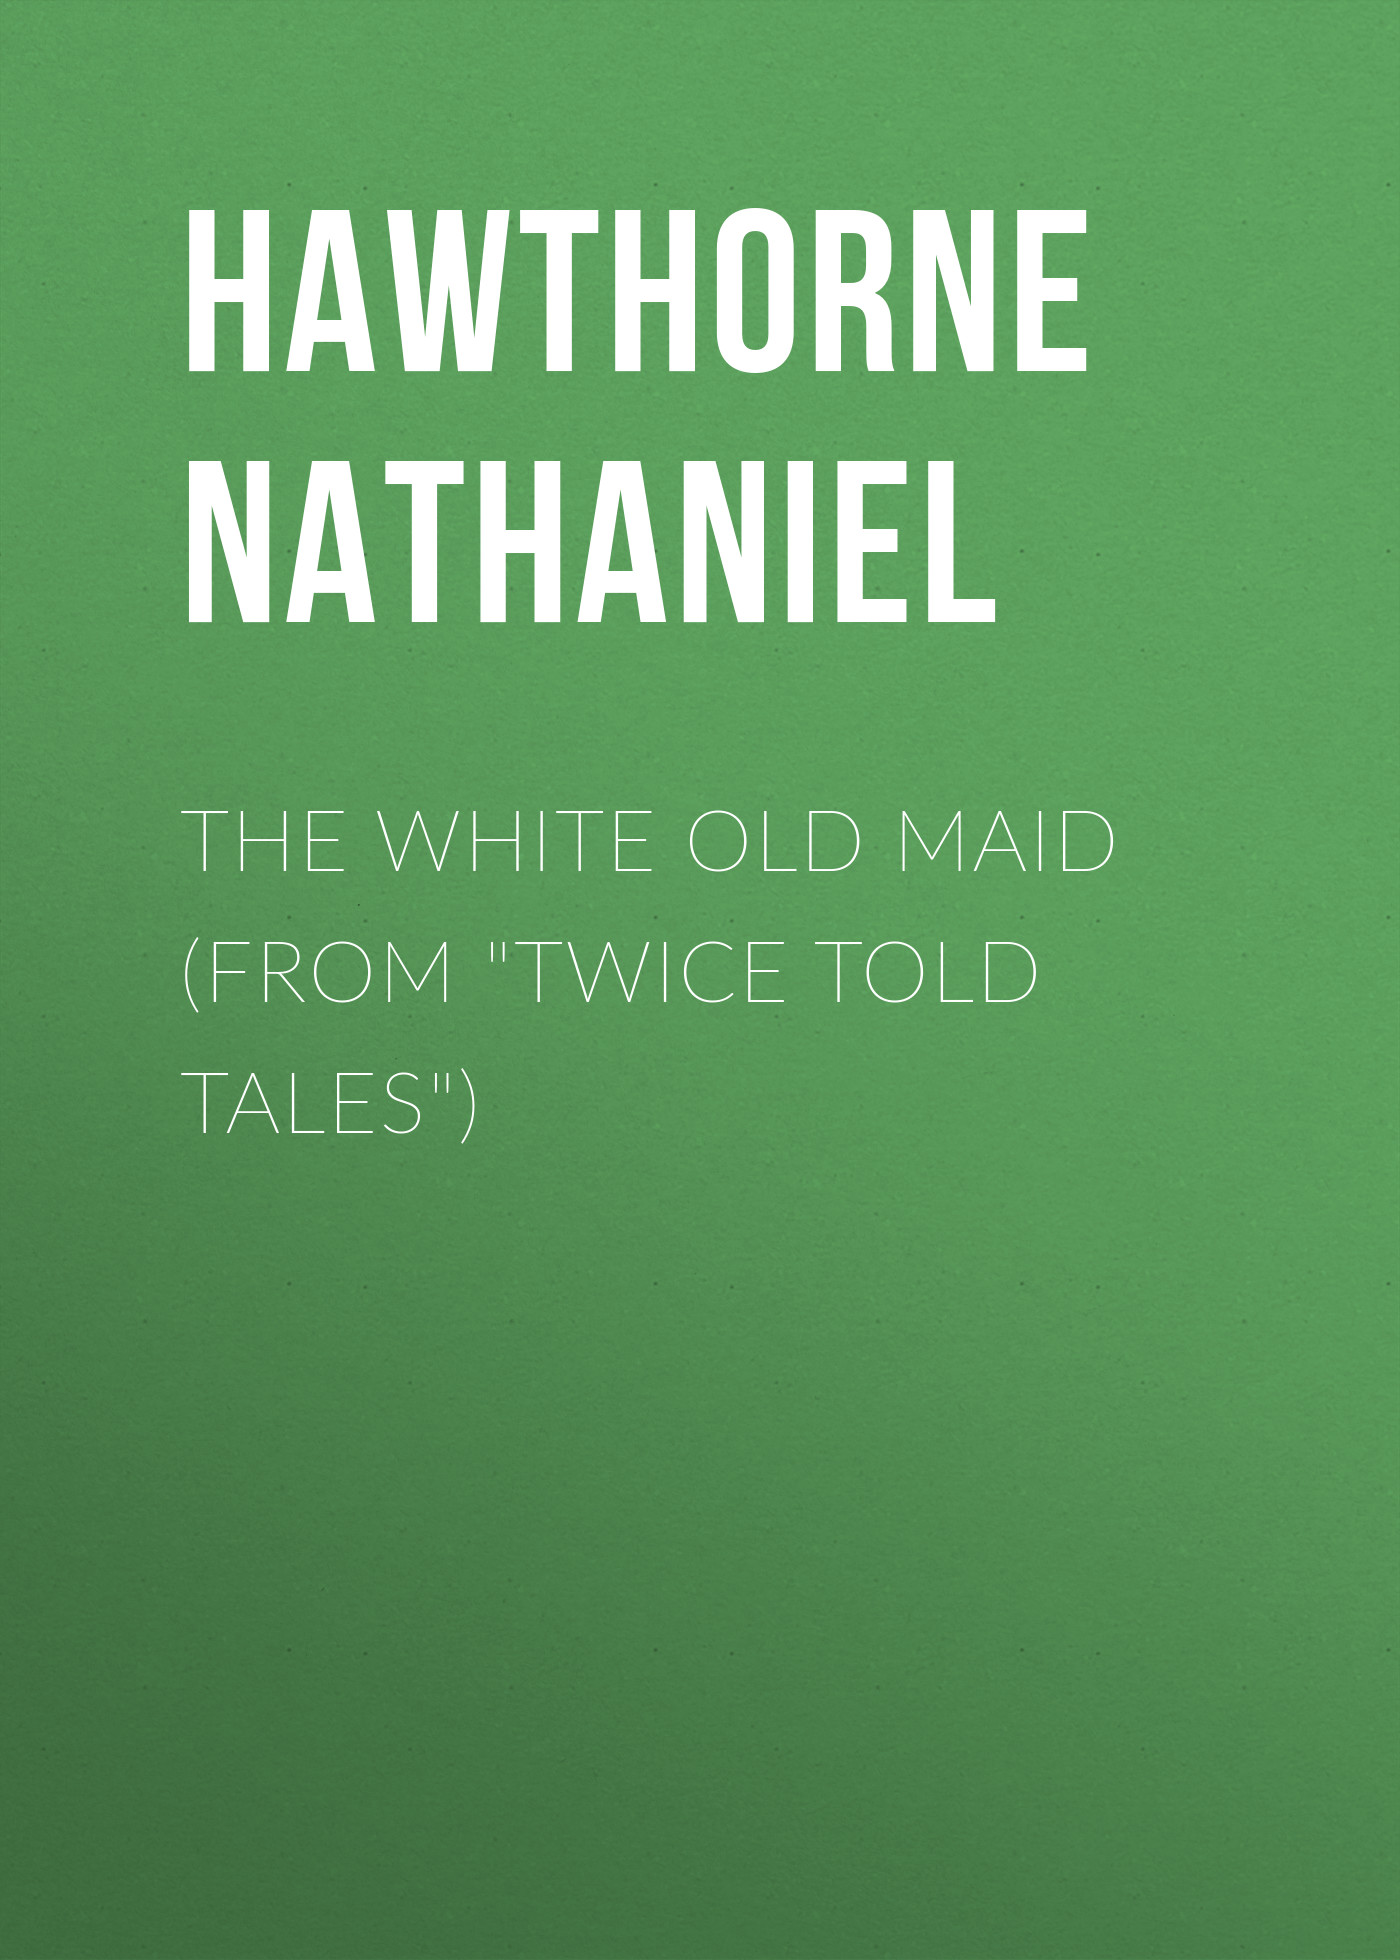 Hawthorne Nathaniel The White Old Maid (From Twice Told Tales) hawthorne n twice told tales isbn 9785521070510